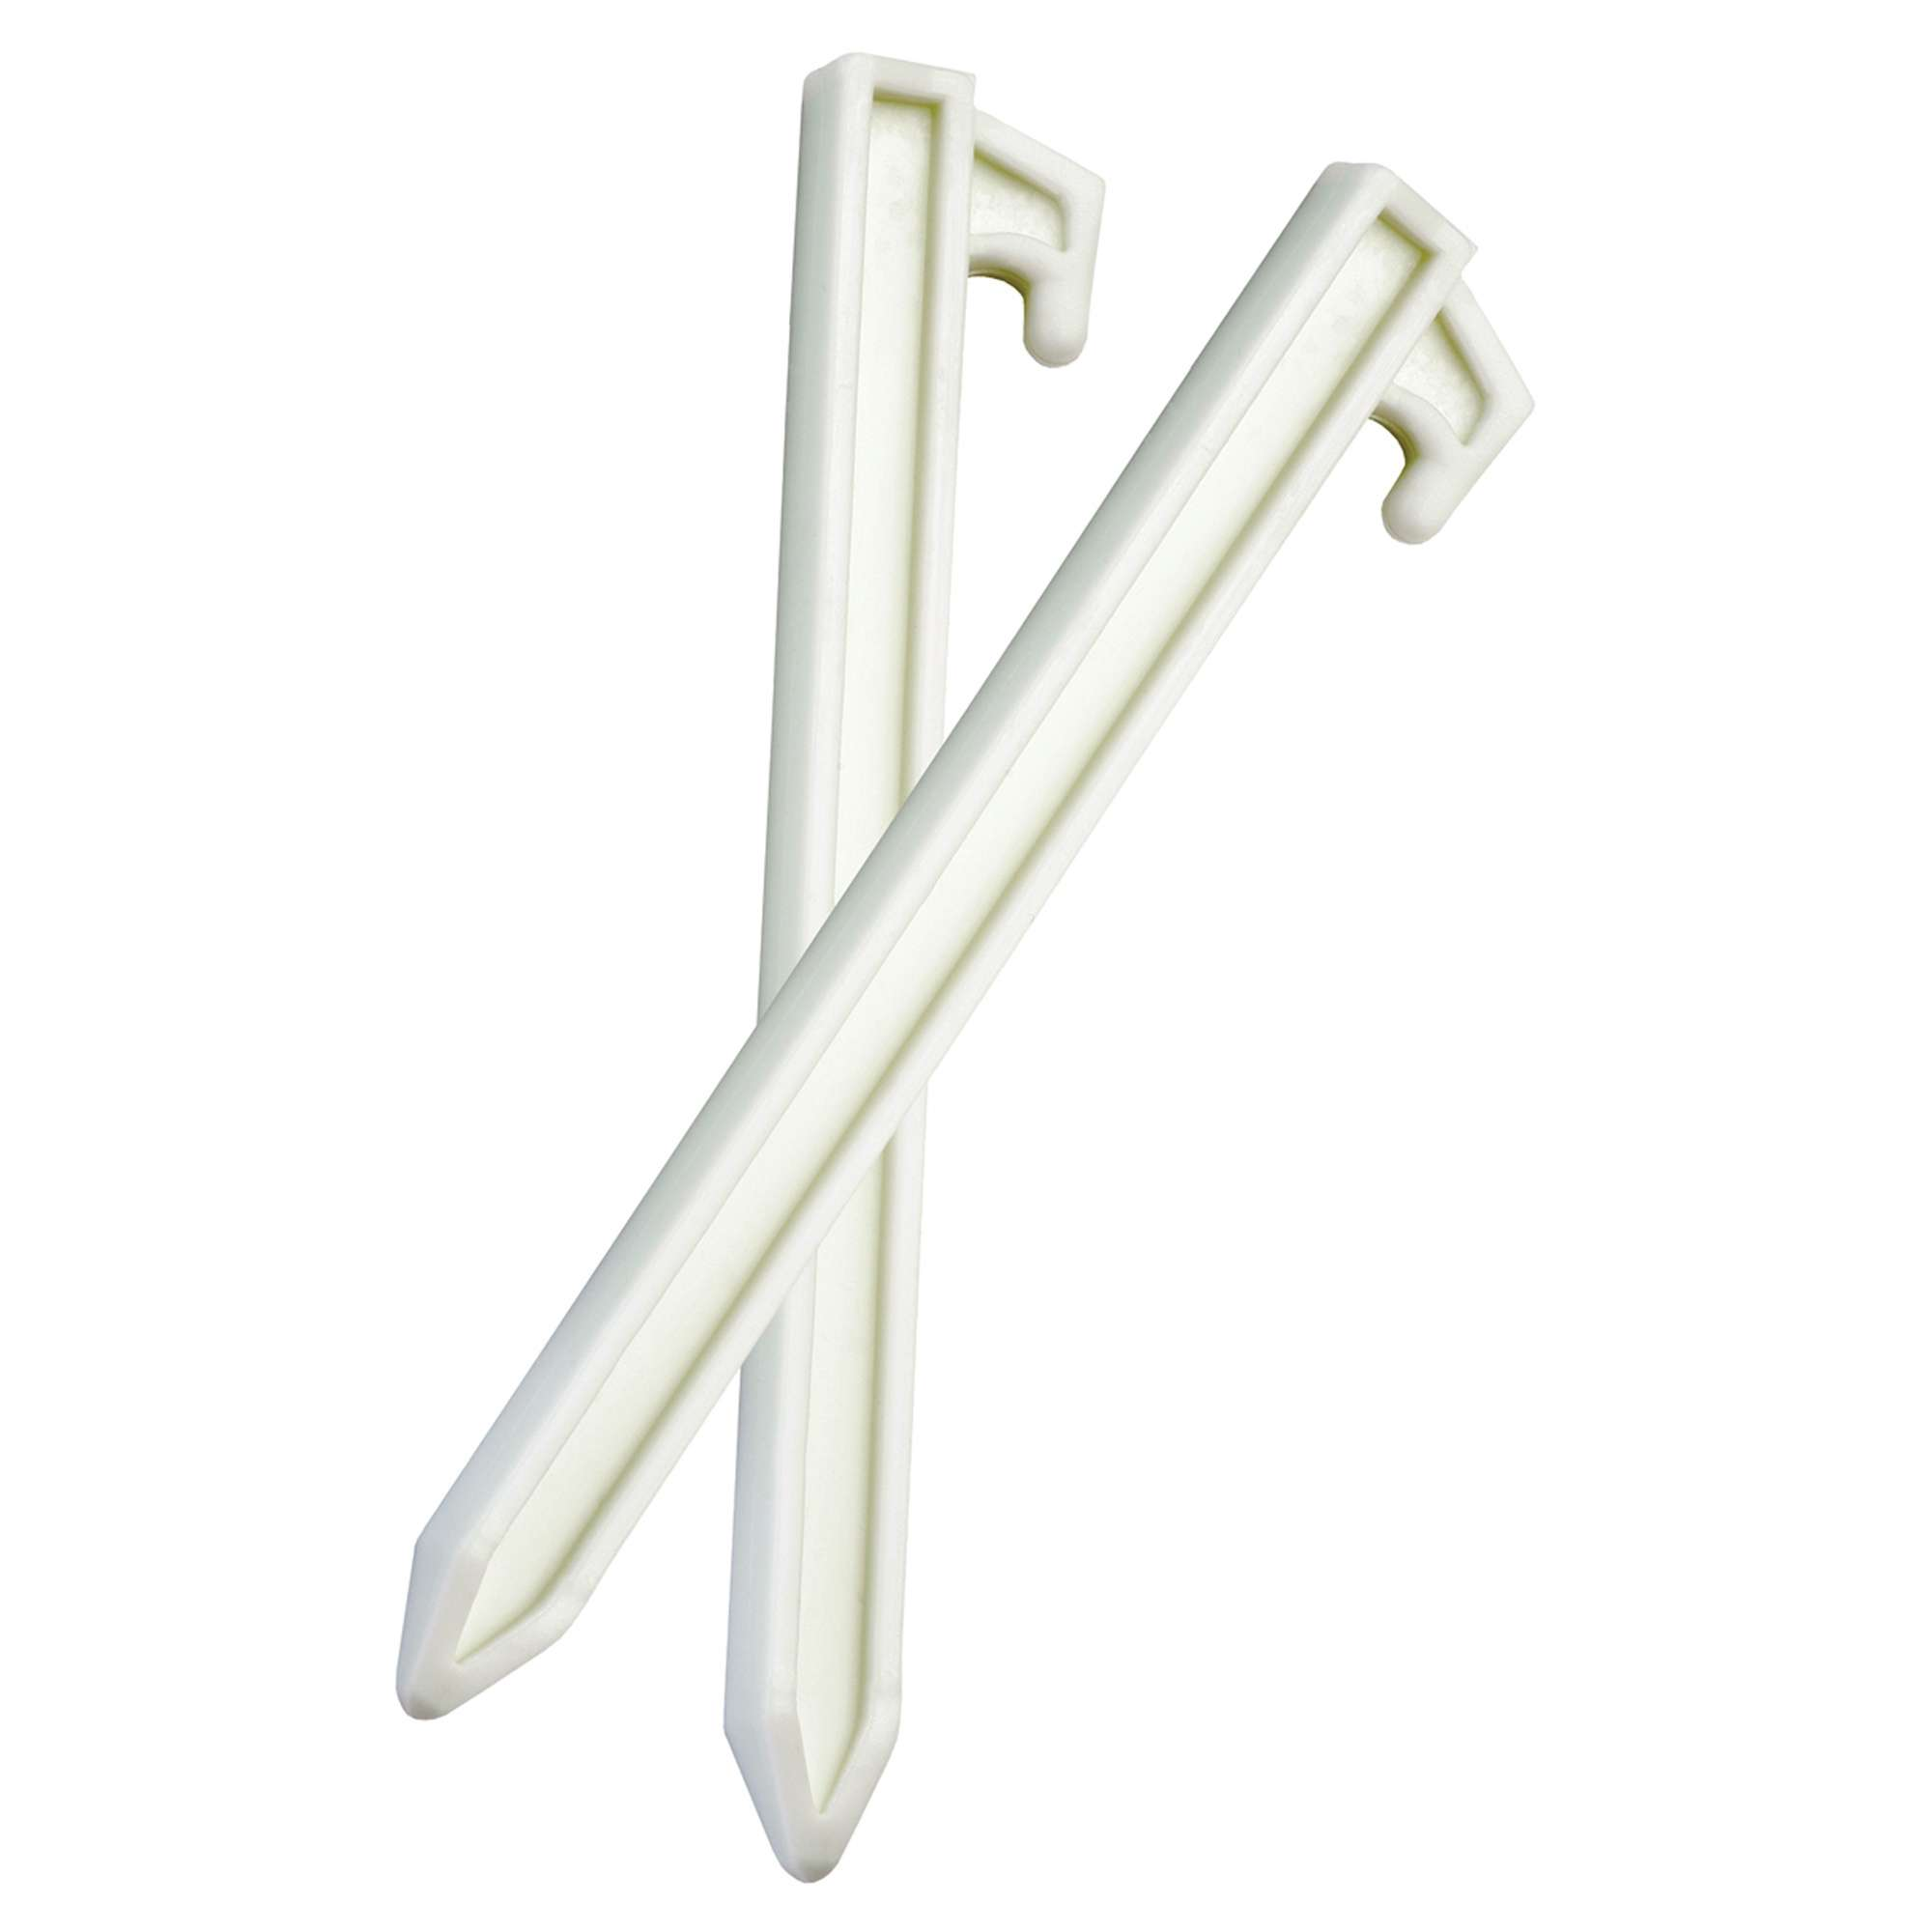 VANGO Biodegradable Tent Pegs